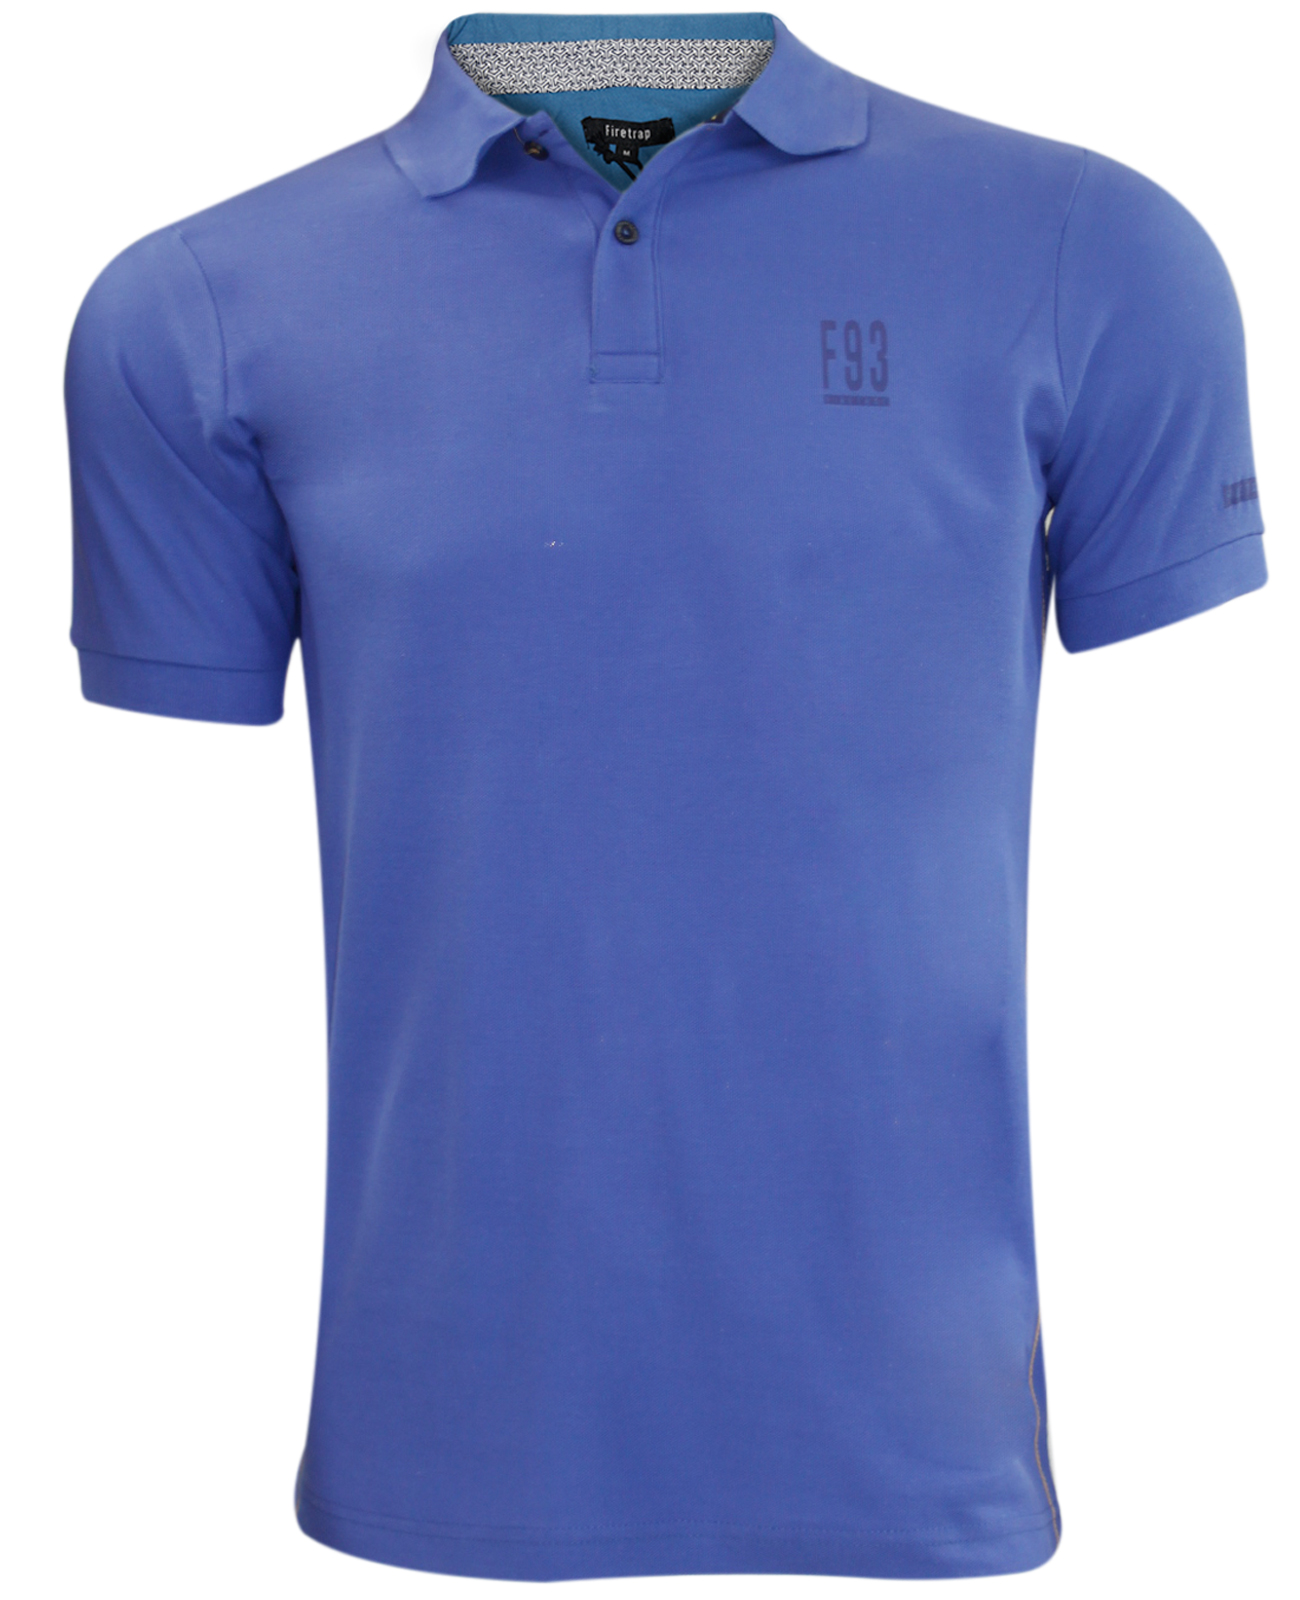 New mens firetrap branded original collar pique polo for Branded polo t shirts